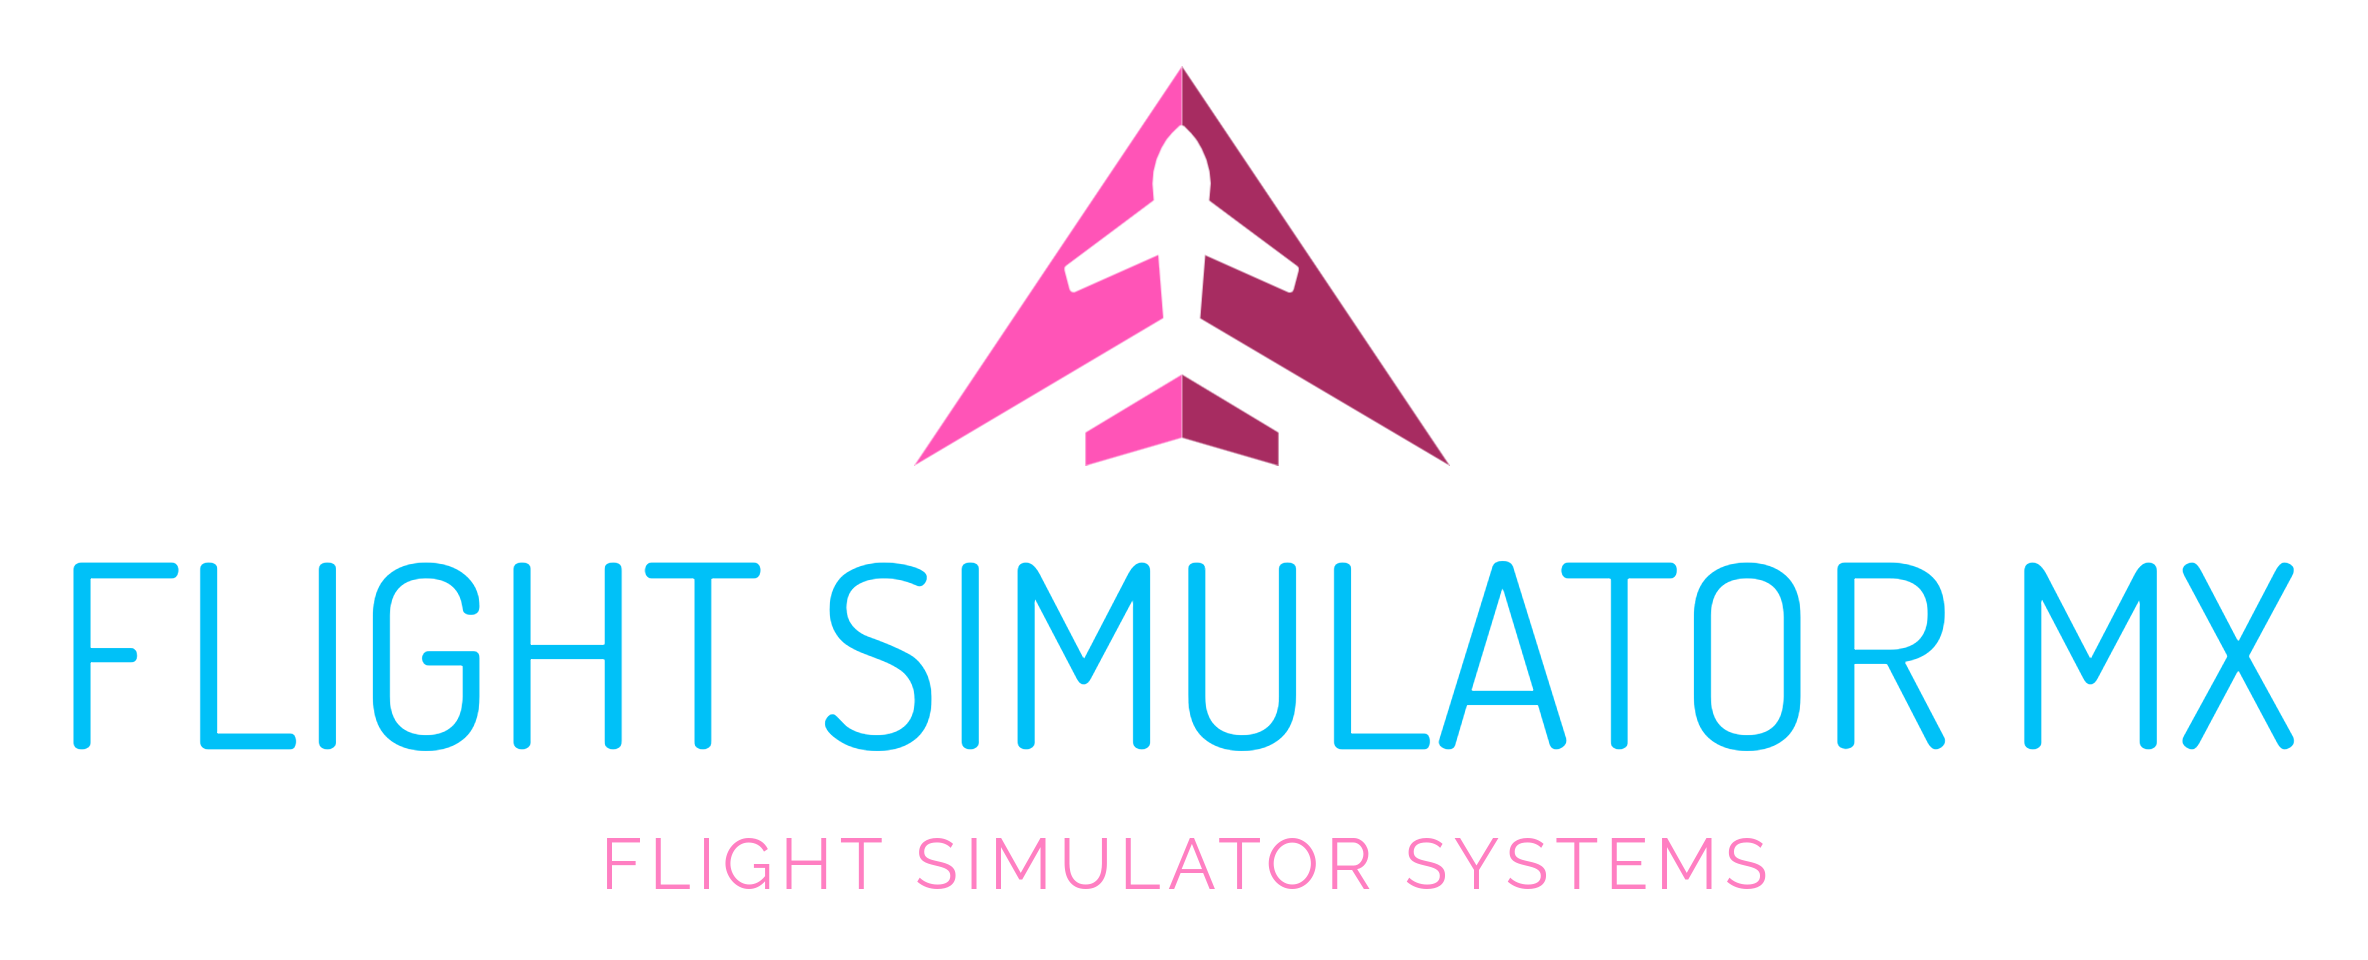 Flight Simulator MX